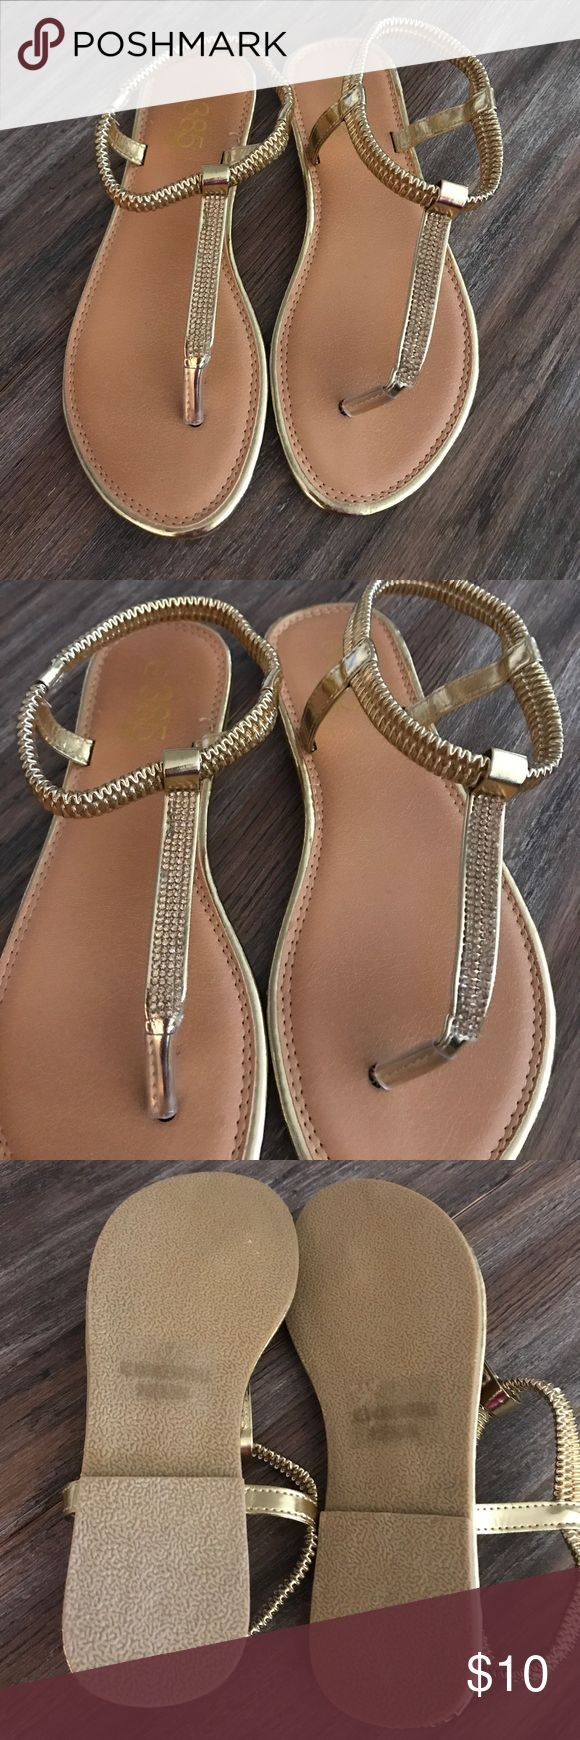 Brand new WOT gold sandals FINAL PRICE DROP These gold sandals have only been tried on, never worn. Brand new condition without tags. Perfect for casual wear, beach wear or even with a nice dress. Very minimal heel as shown in last picture. 385 Fifth Shoes